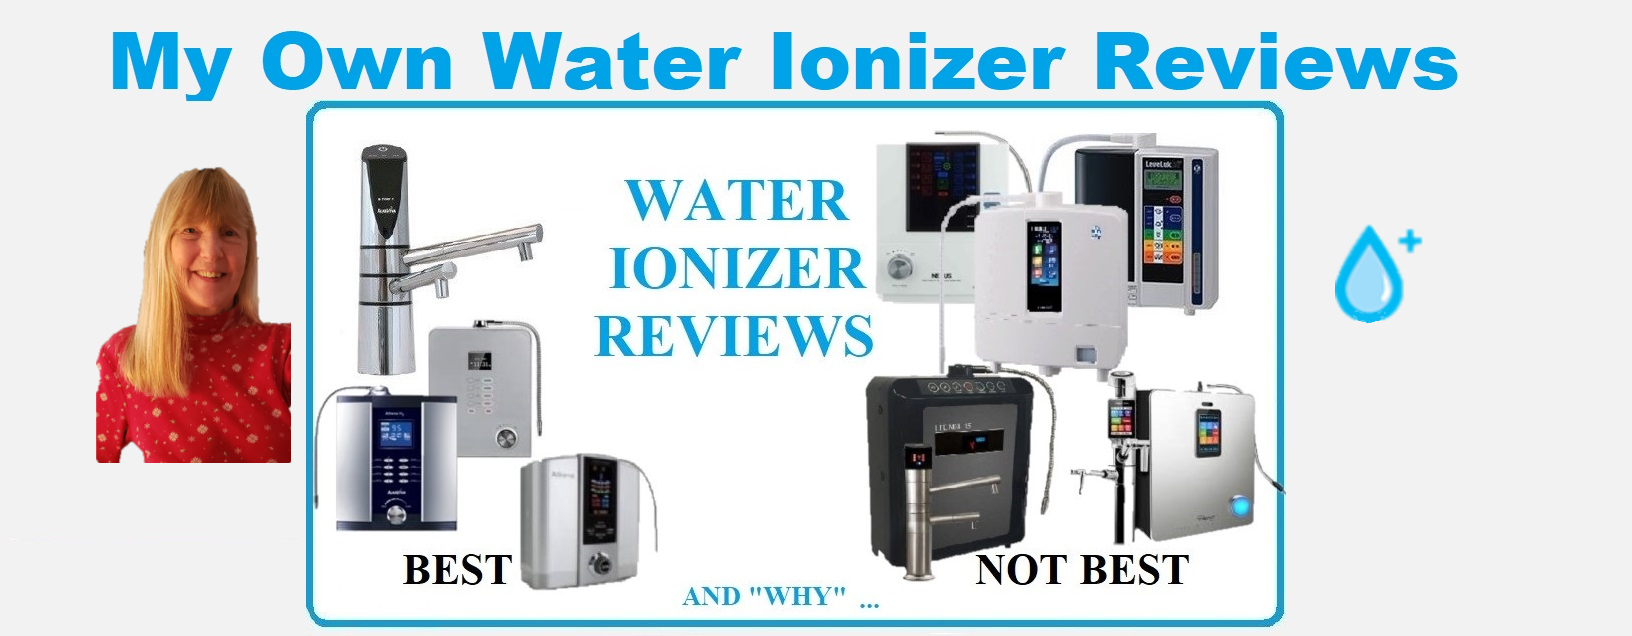 alkaline-water-plus-water-ionizer-reviews.jpg.png